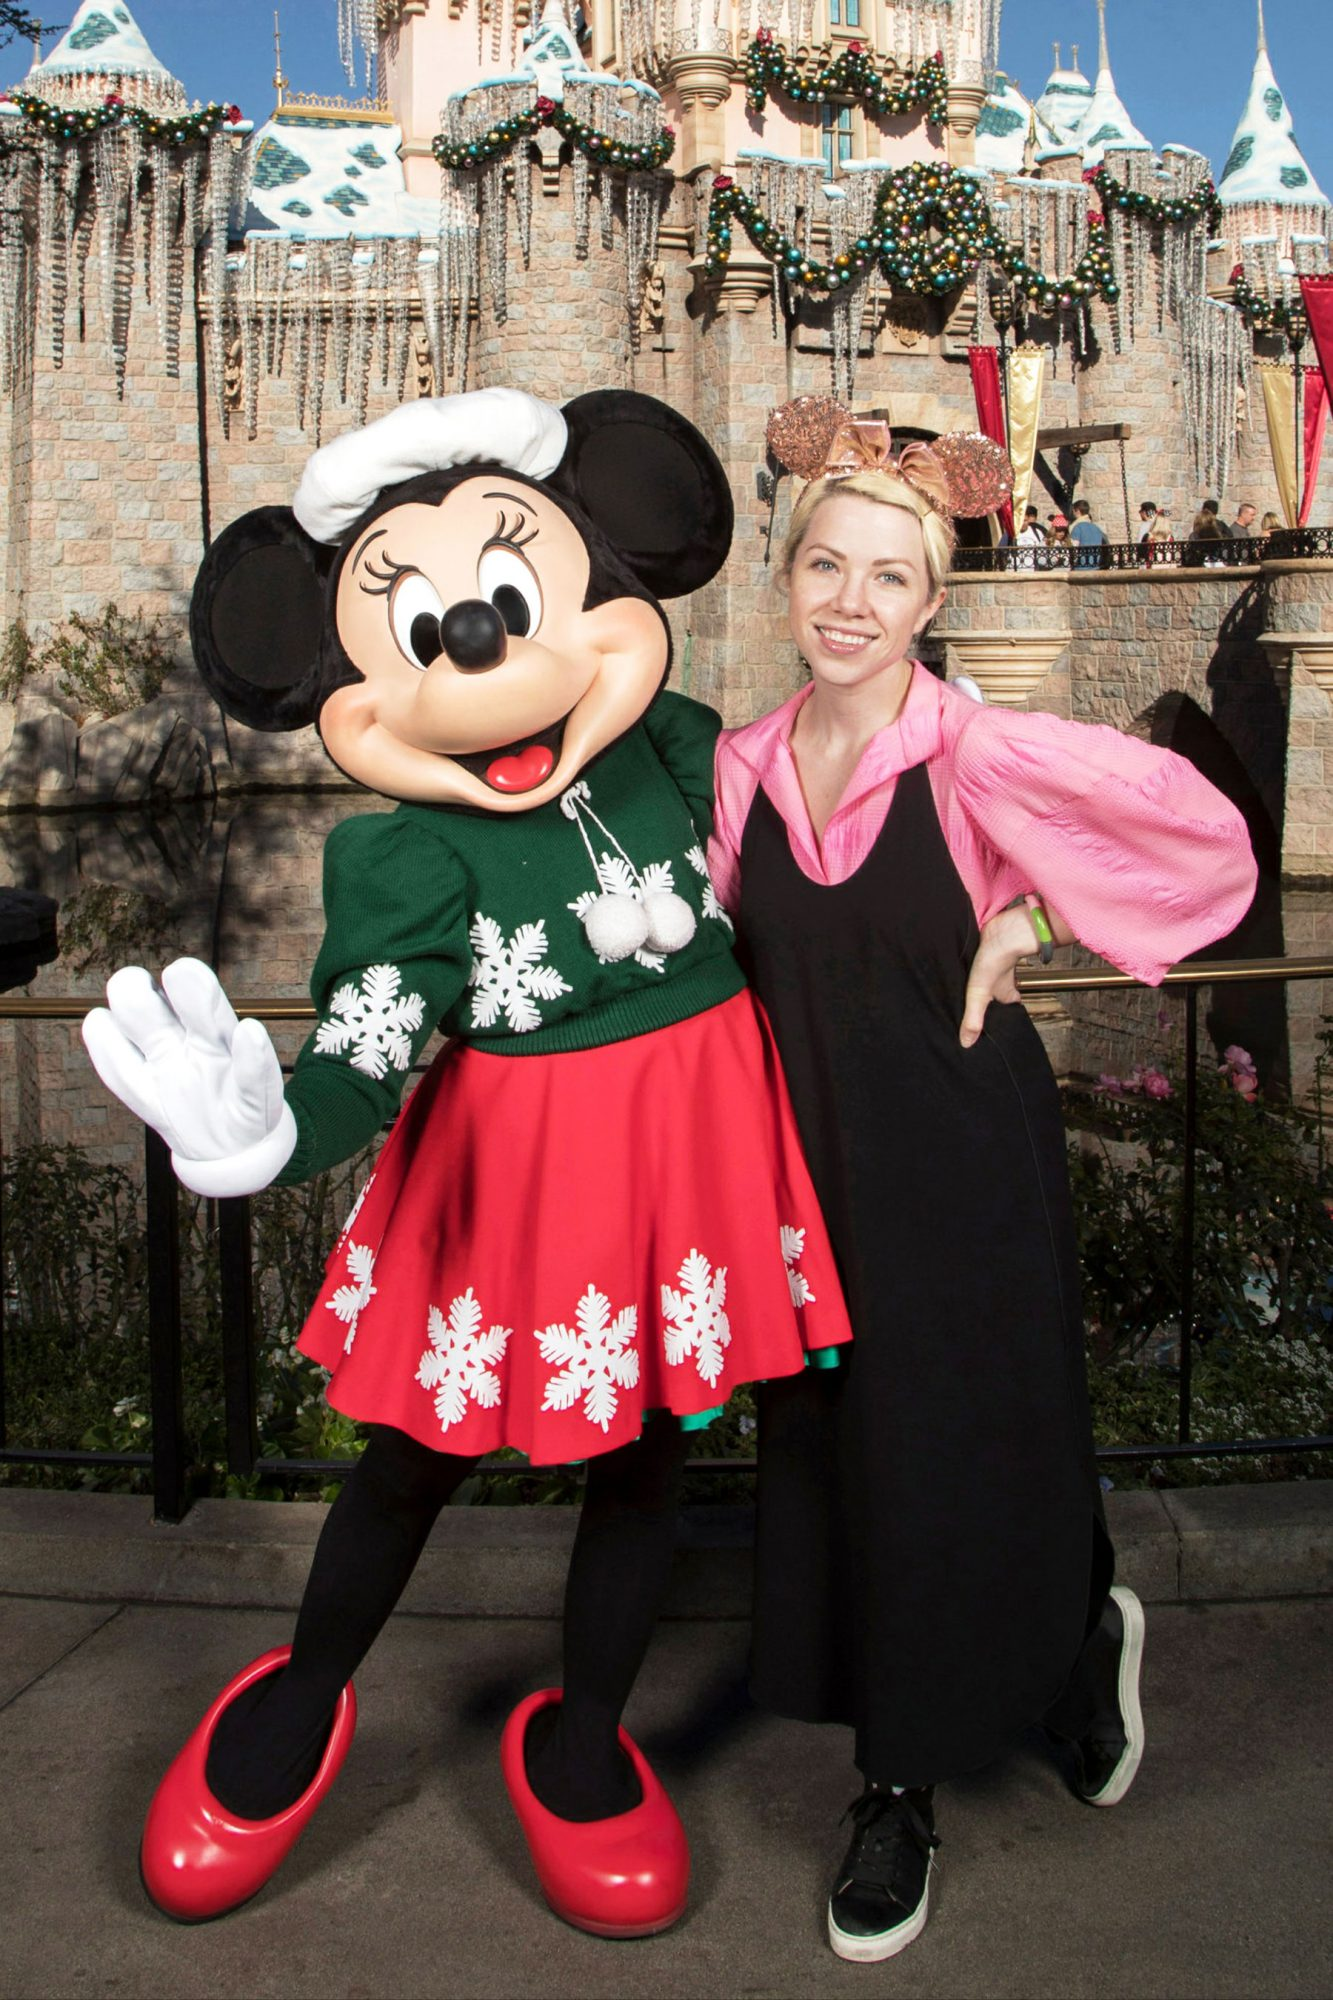 Carly Rae Jepsen with Minnie Mouse at Disneyland Park